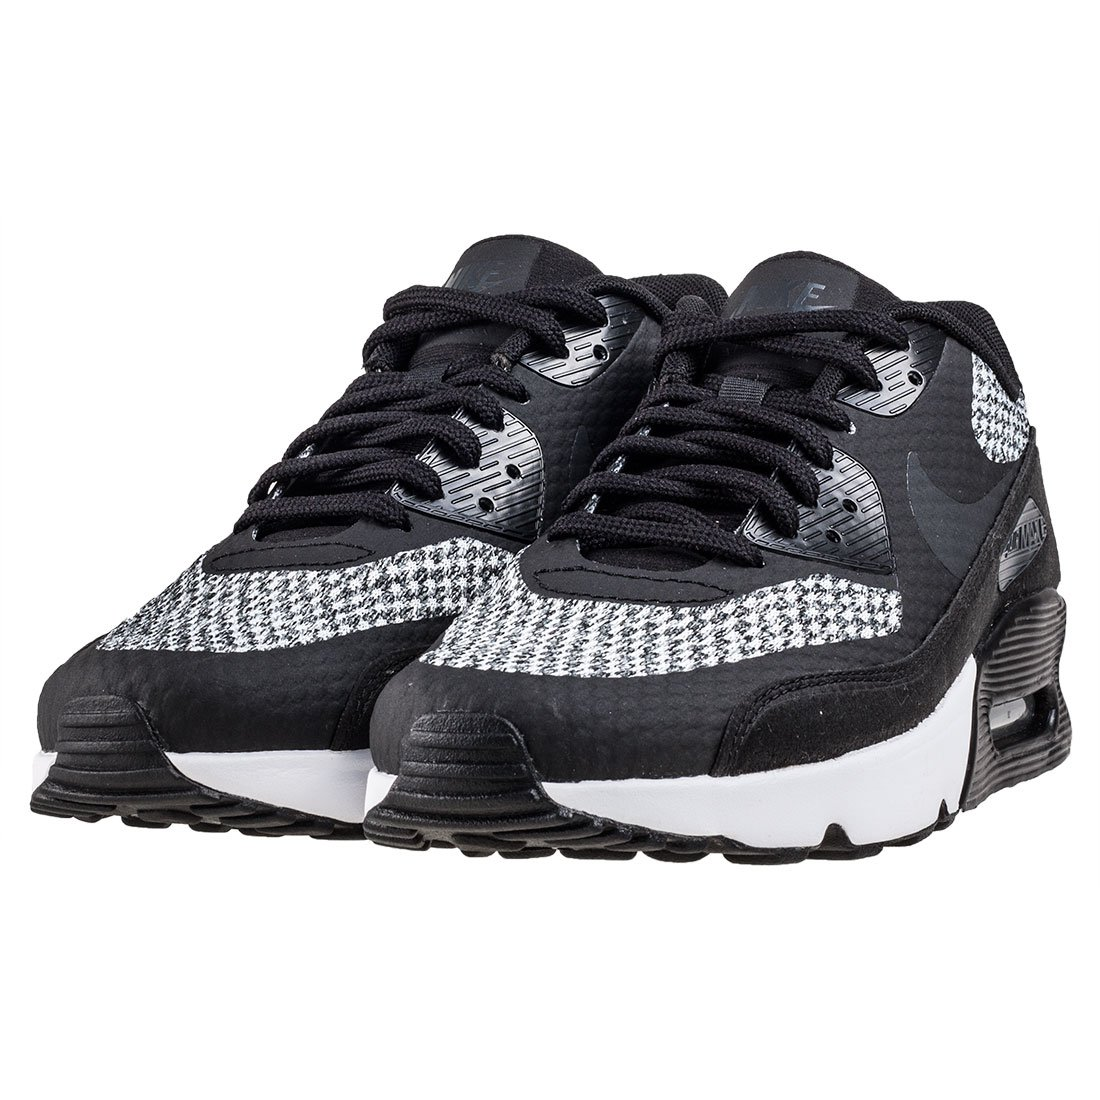 Nike Air Max 90 Ultra 2.0 Se GS Junior Running Trainers 917988 Sneakers Shoes UK 5 US 5.5Y EU 38, Black Anthracite Cool Grey 005